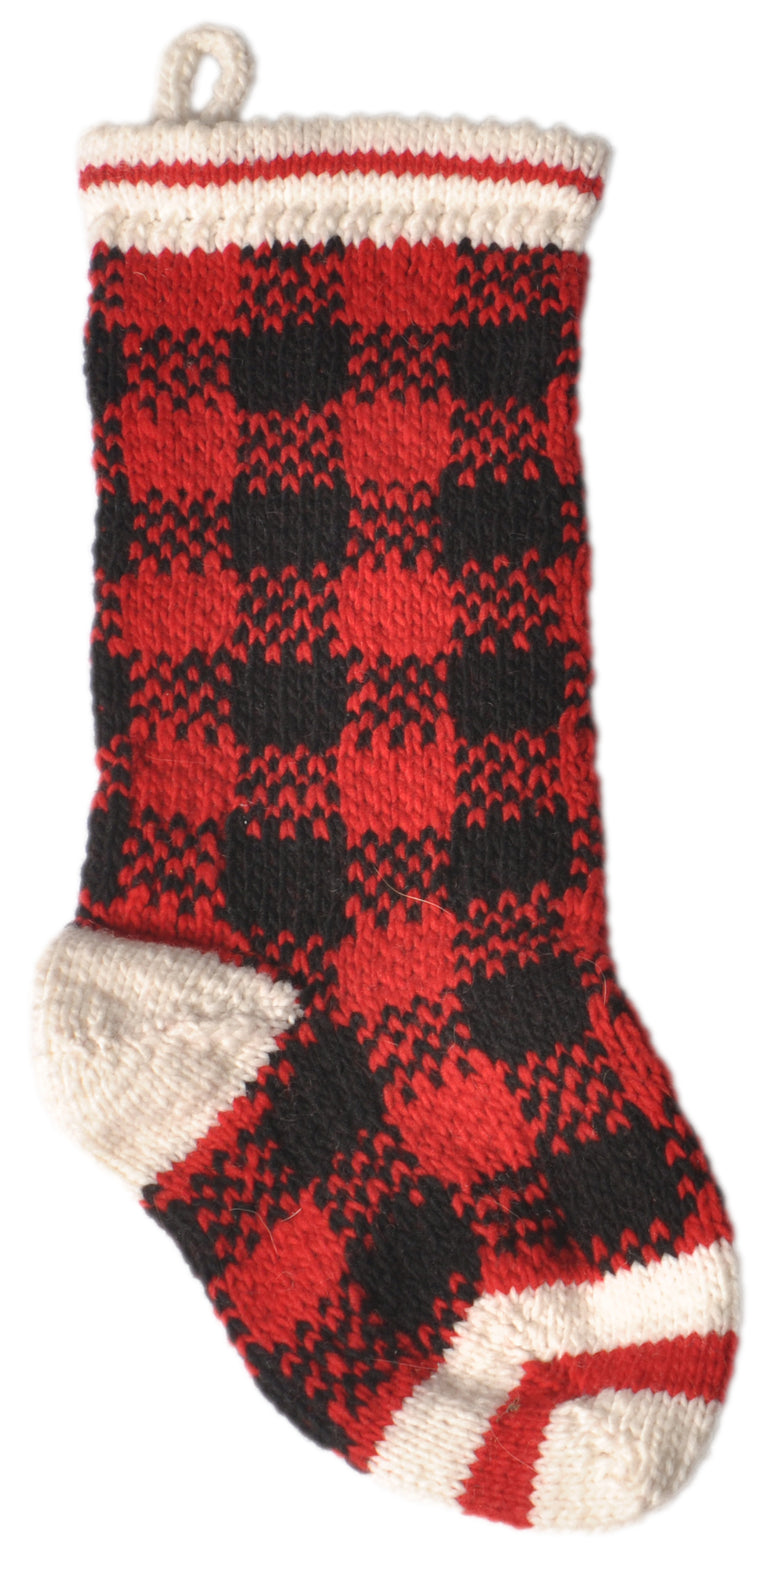 "Apparel - Sweater - Wool - ""Buffalo Plaid"" - Matching Xmas Doggy Stocking"